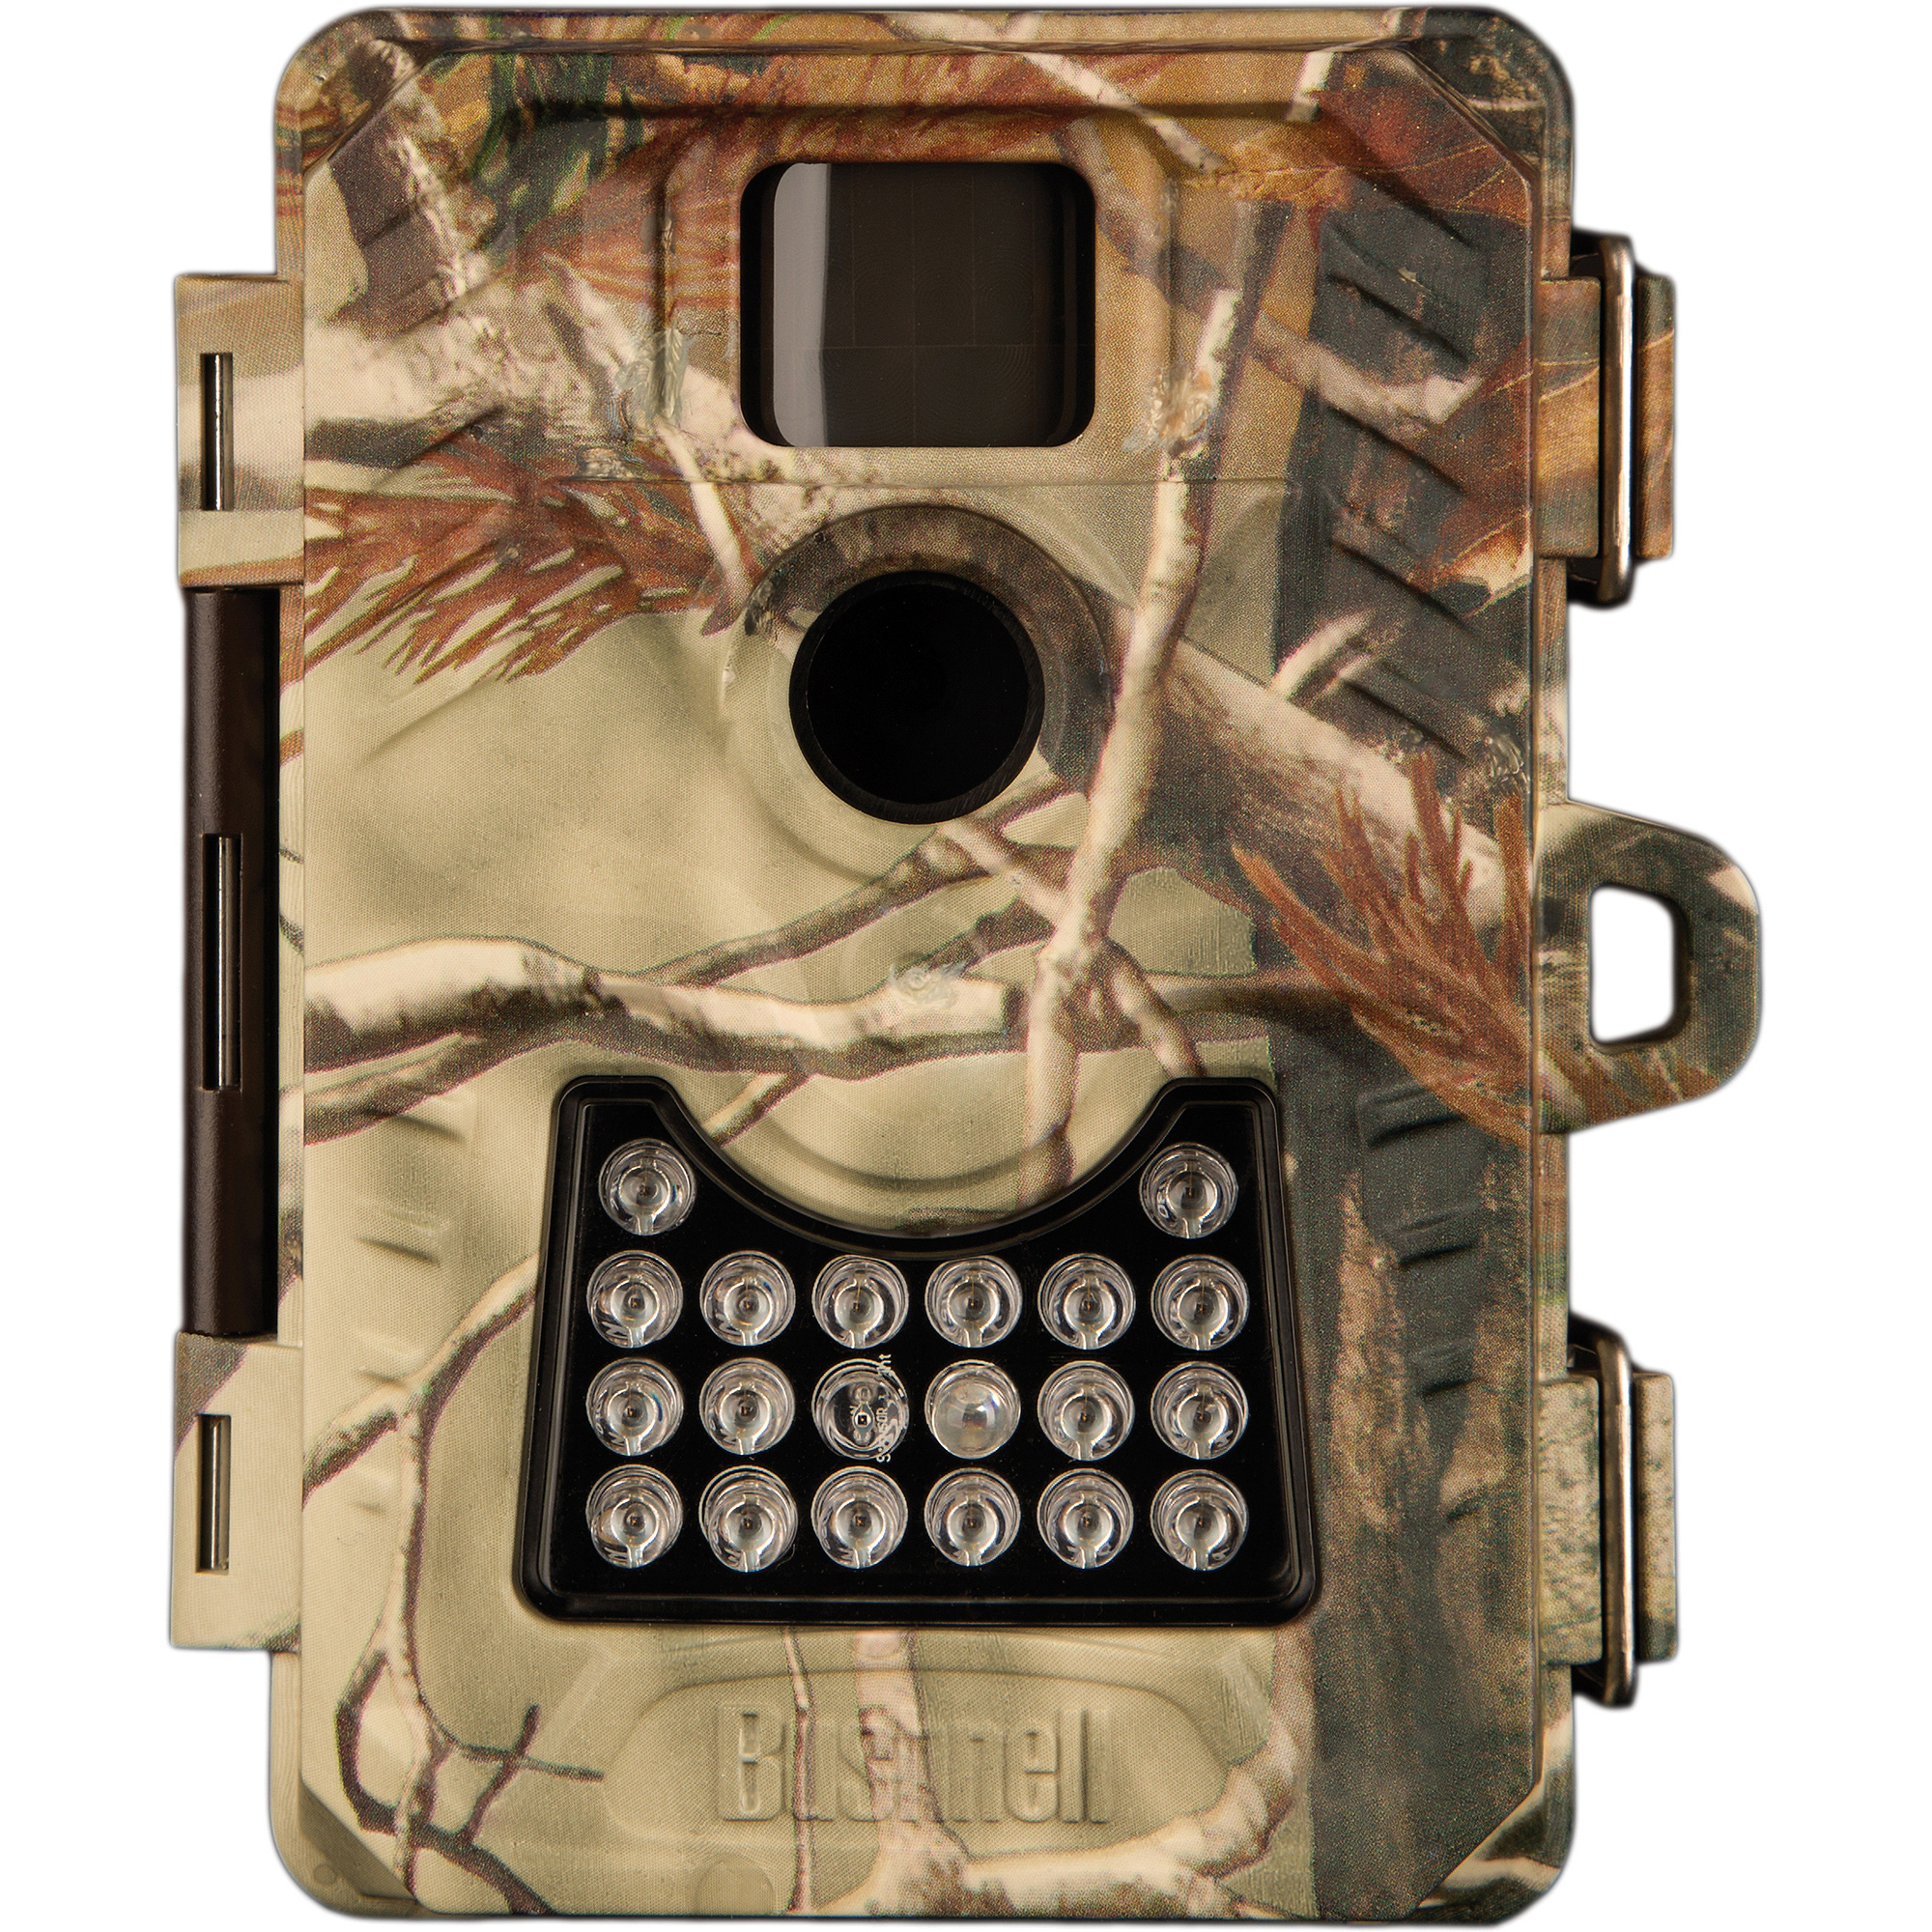 Bushnell 7MP RTAP Camo Night Vision Trail Cam - Walmart.com